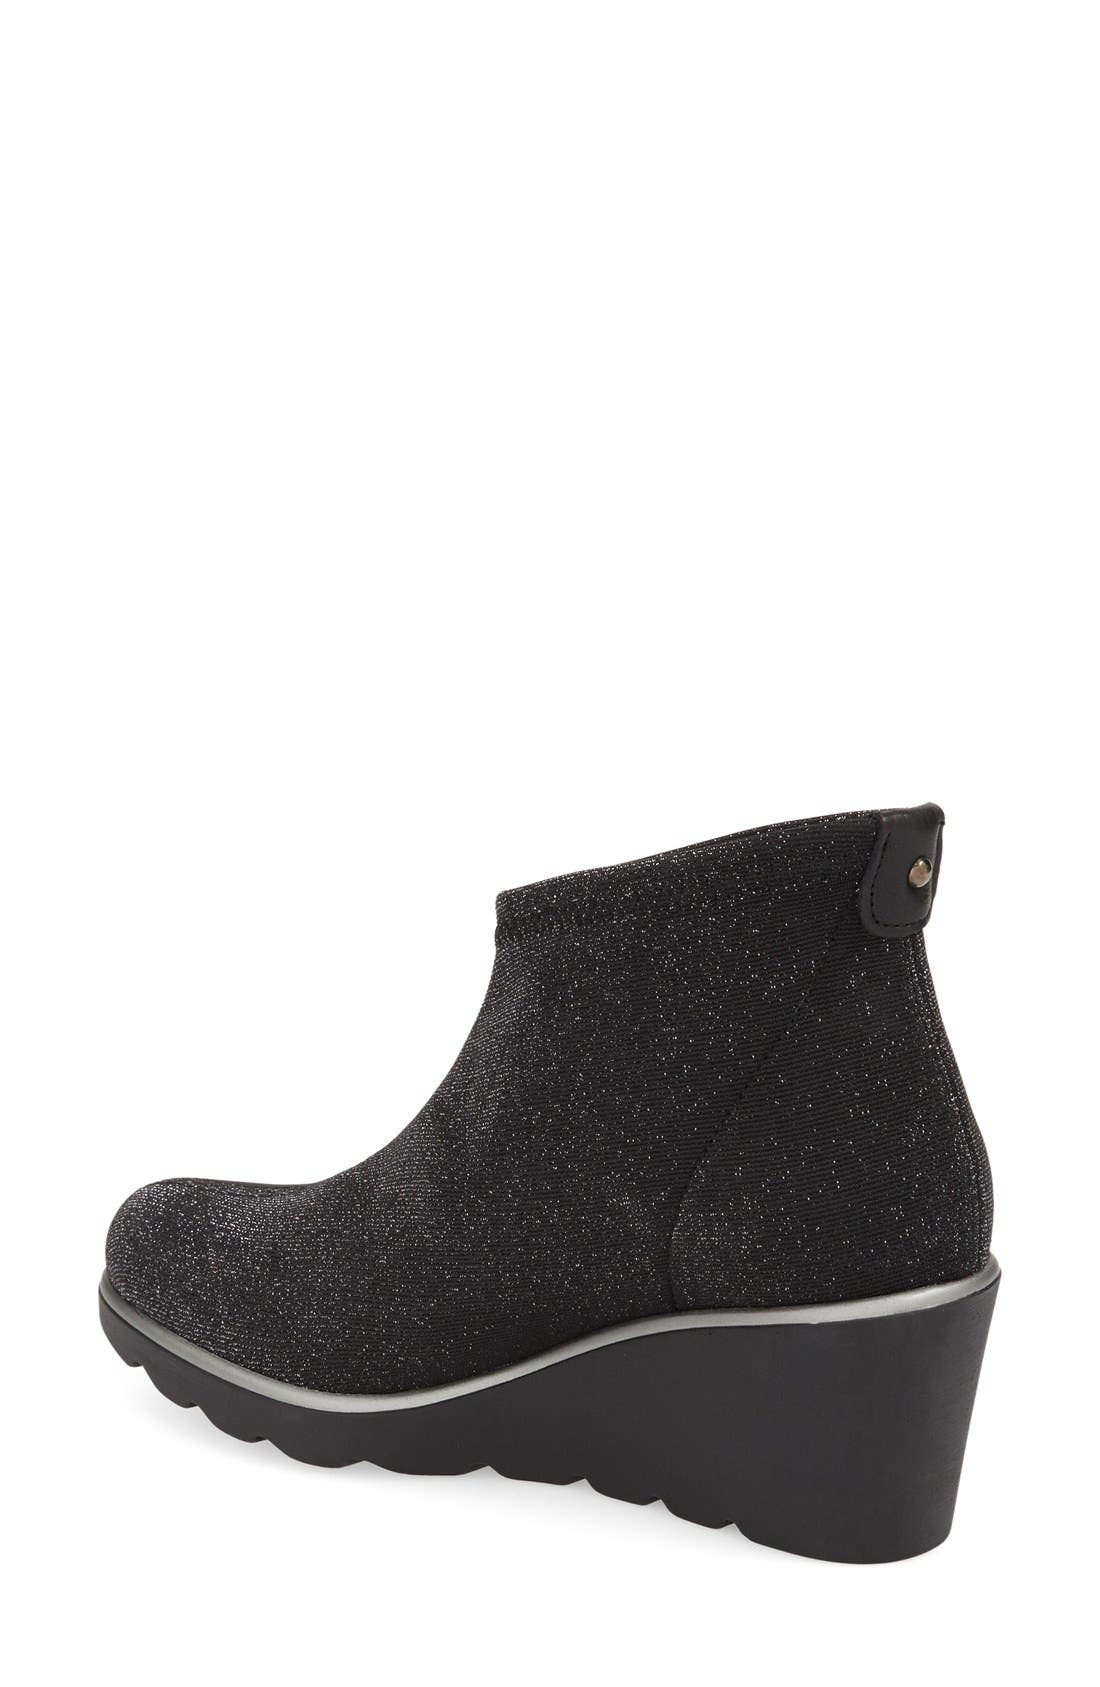 'Baltic' Wedge Bootie,                             Alternate thumbnail 2, color,                             001